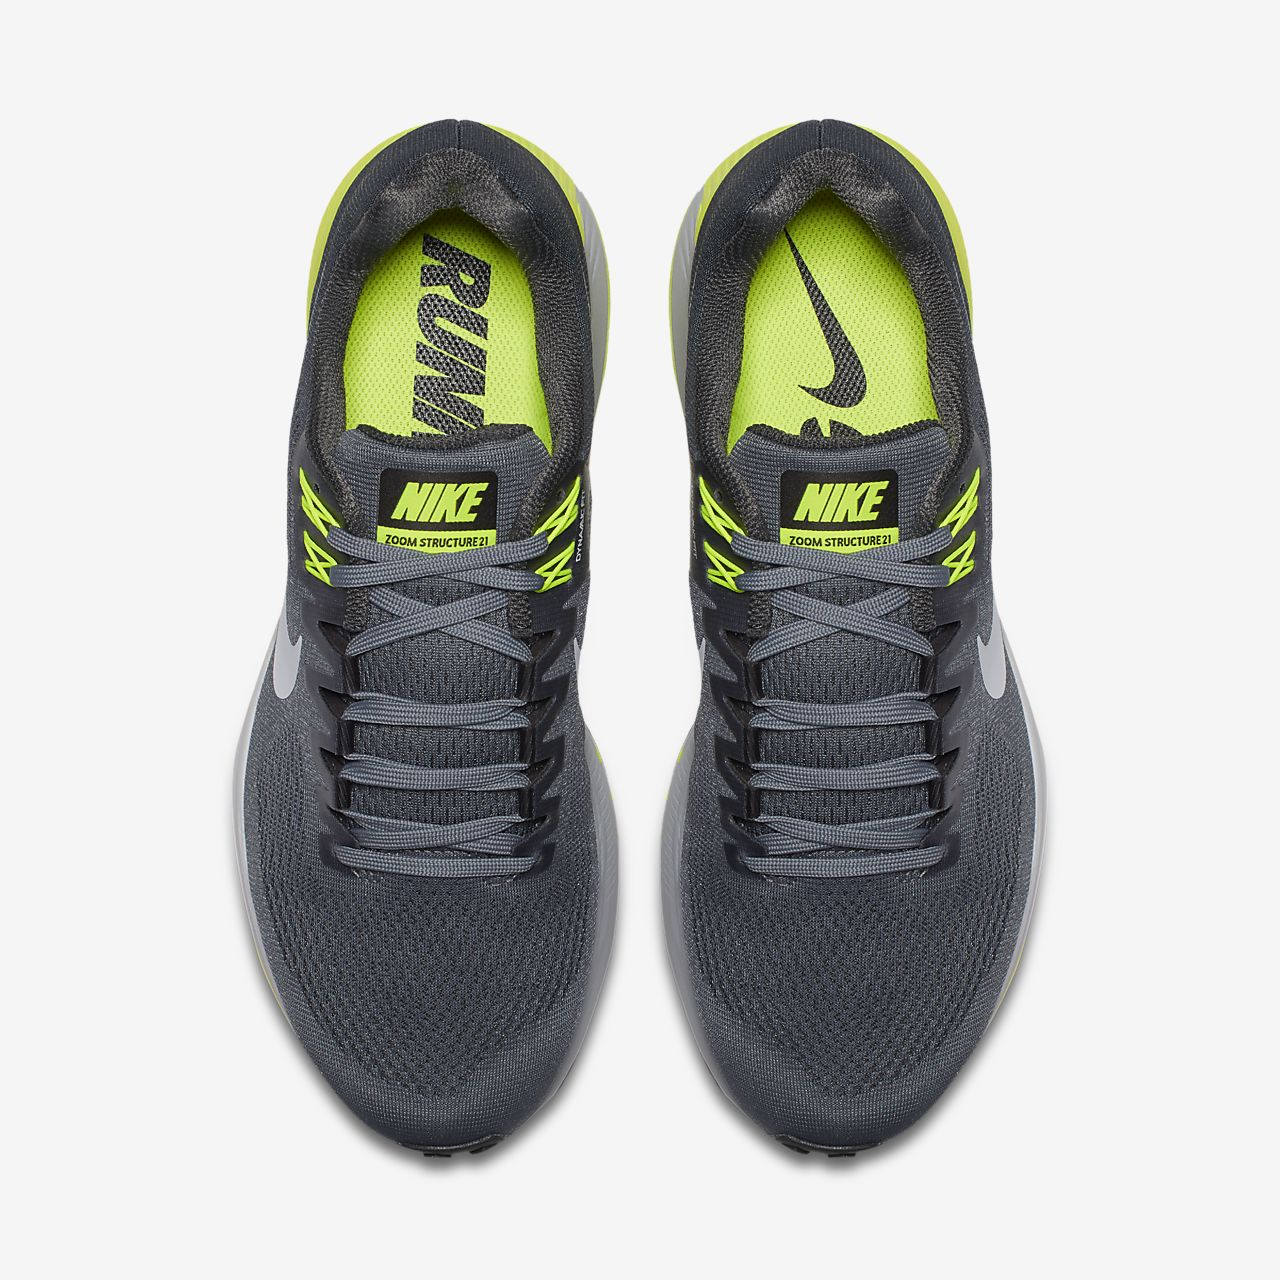 Zapatillas running Nike Air Zoom Structure 21 qVNx1b